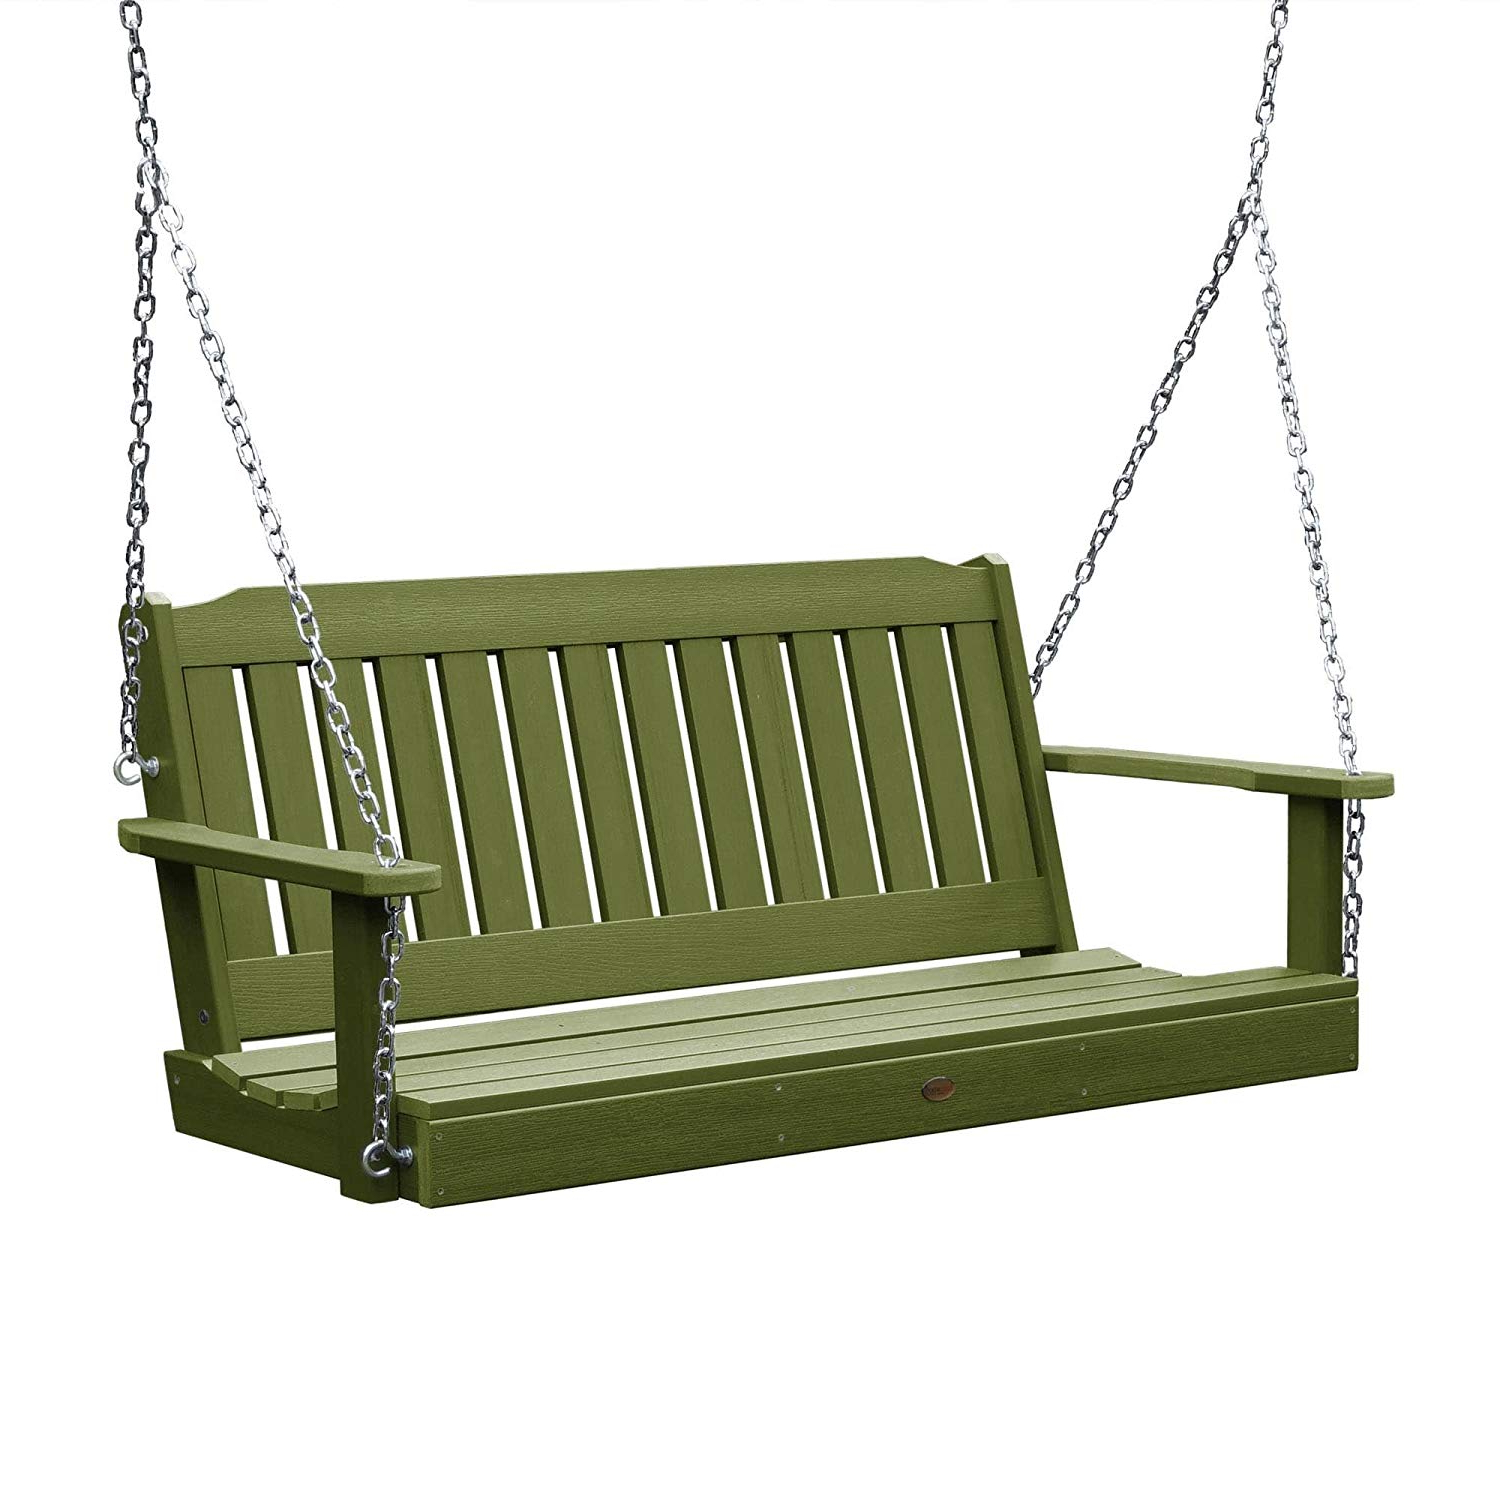 Most Popular Cheap Porch Swing Chain, Find Porch Swing Chain Deals On Intended For Porch Swings With Chain (View 20 of 26)